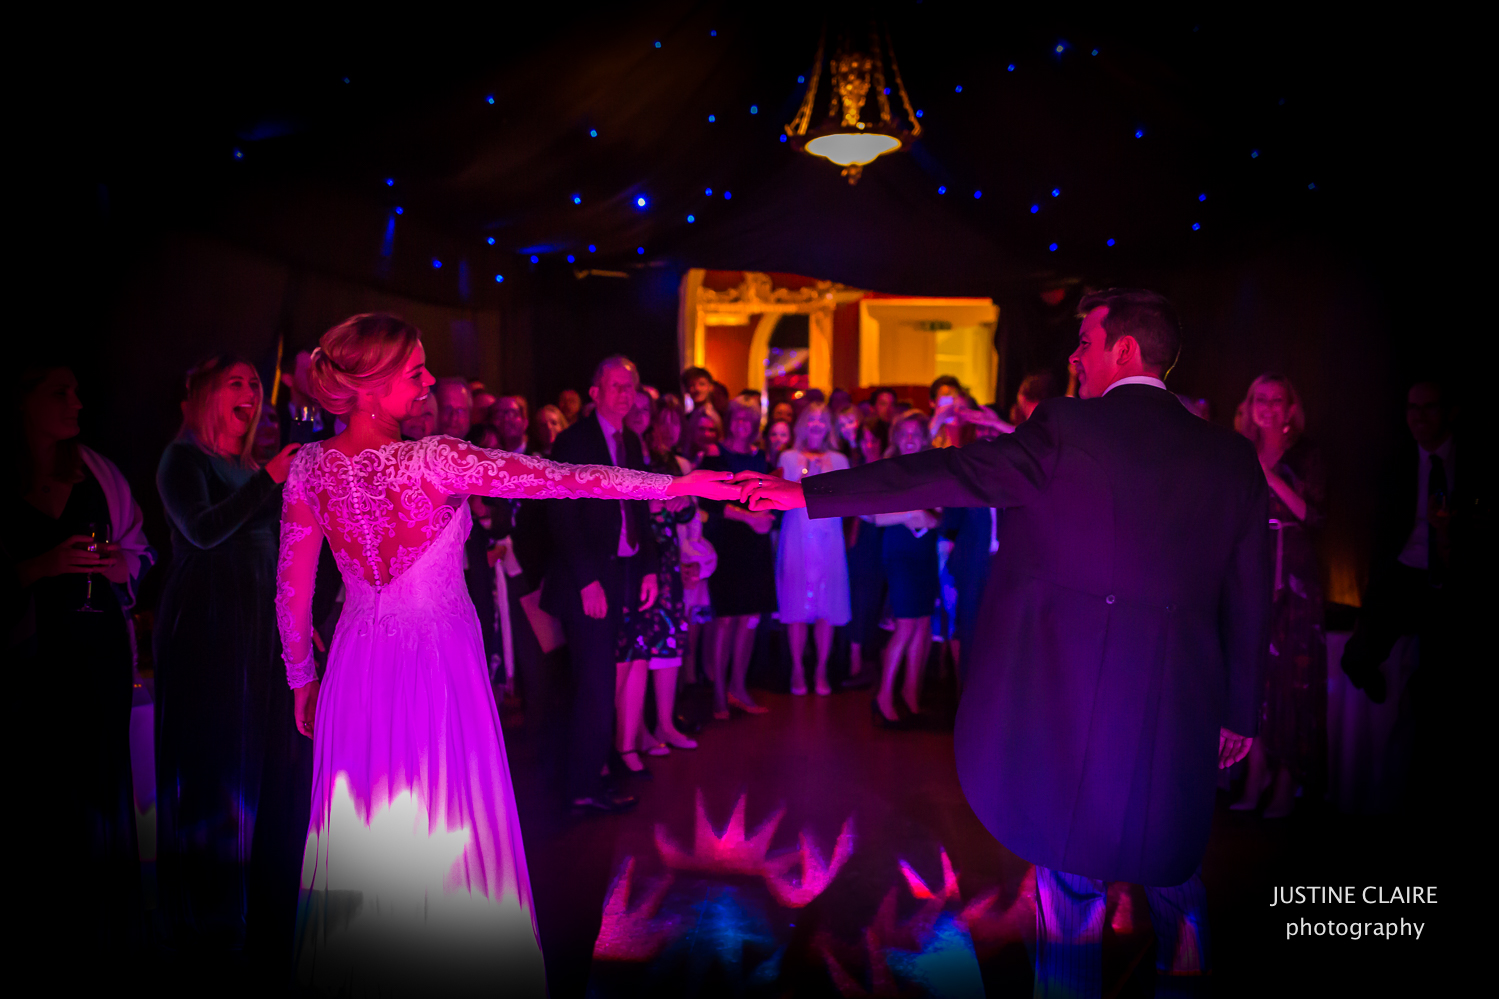 goodwood house first dance-4-2.jpg